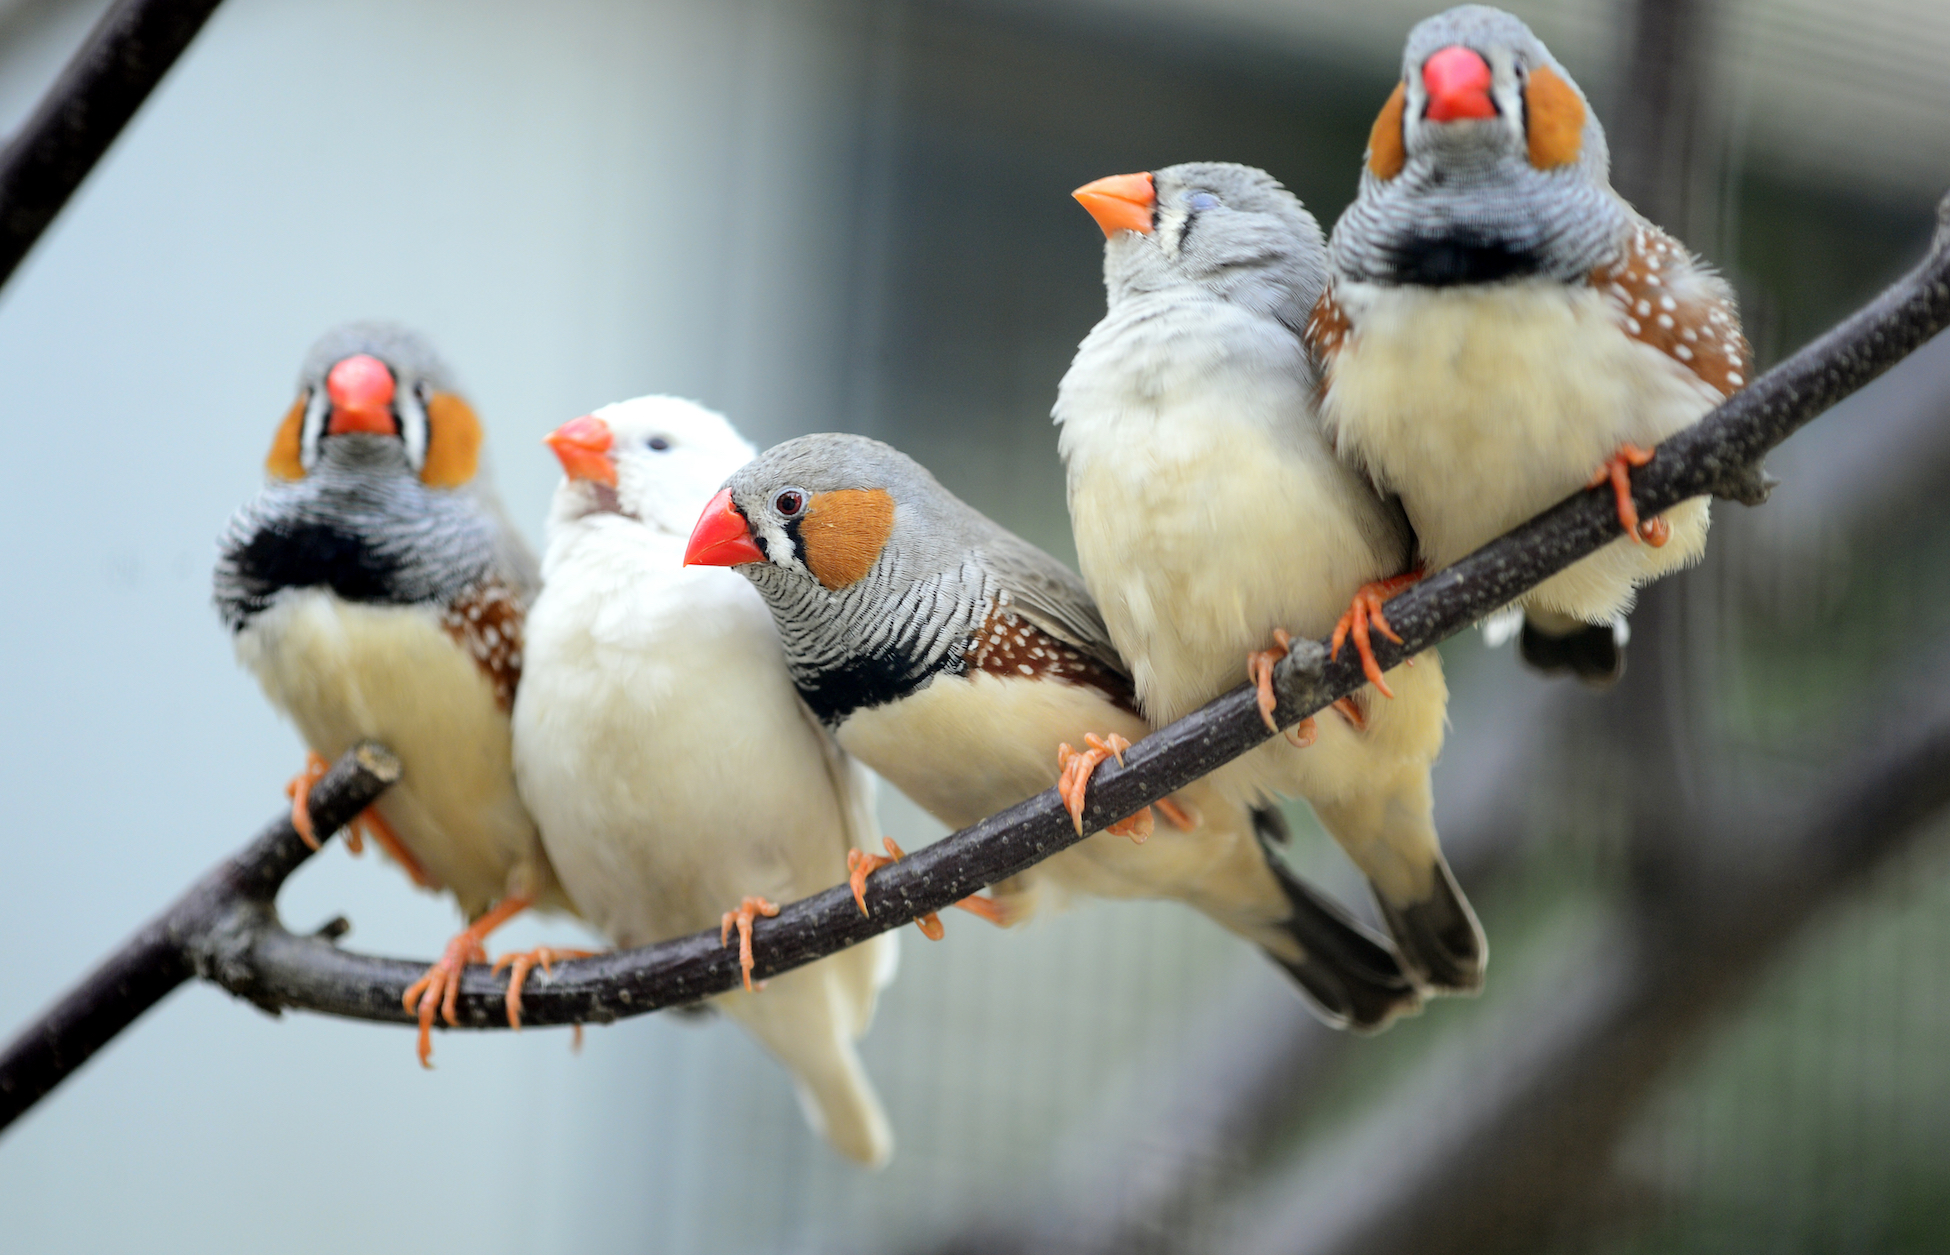 Zebra finches sing while they are dreaming as a way to practice their calls, try new improvisations, and mimic the songs of their friends.